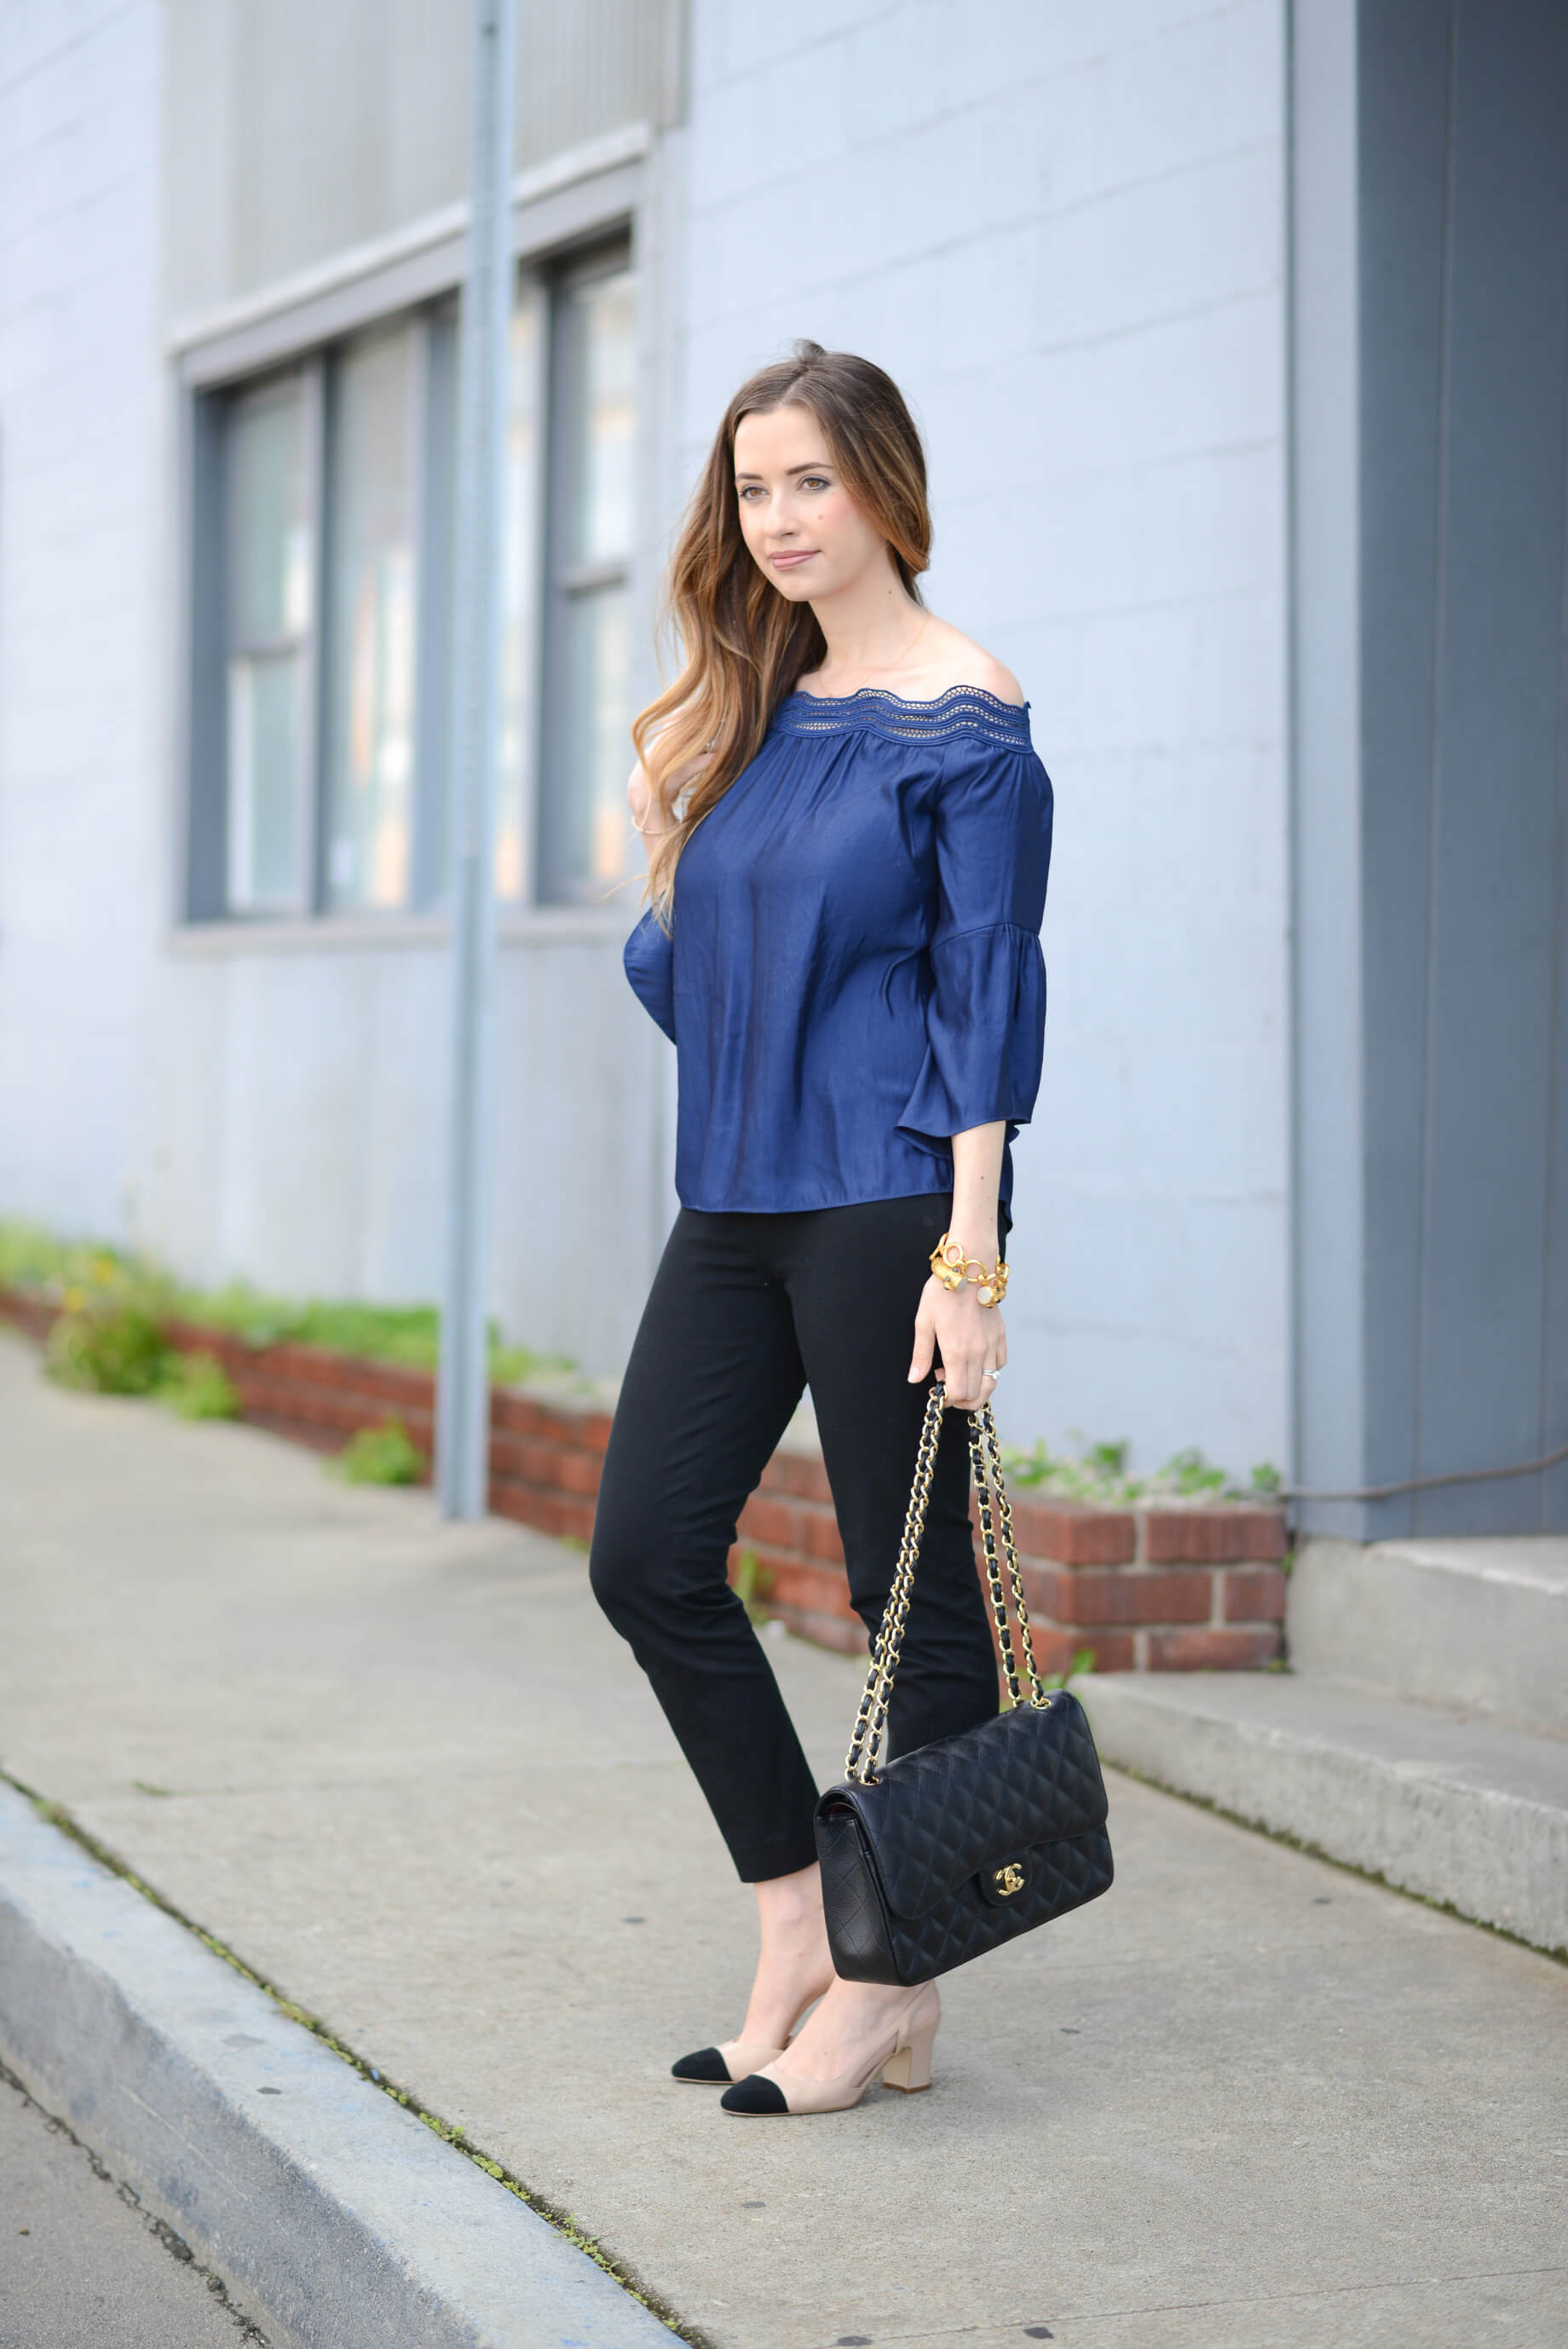 Styling Navy with Black